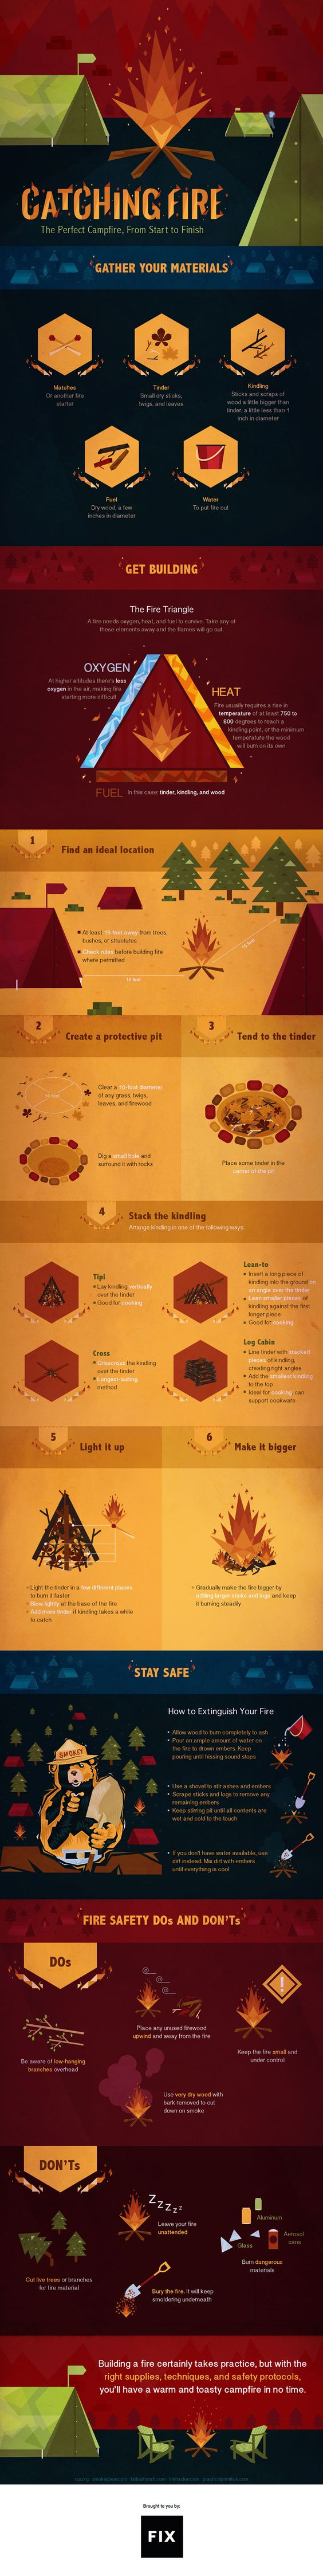 Building a fire should be easy! No more embarrassing burnout efforts ending with a puff of smoke. From beginning with the proper materials, to stacking the fuel for a successful first light, this infographic will show you how with some great illustrations.